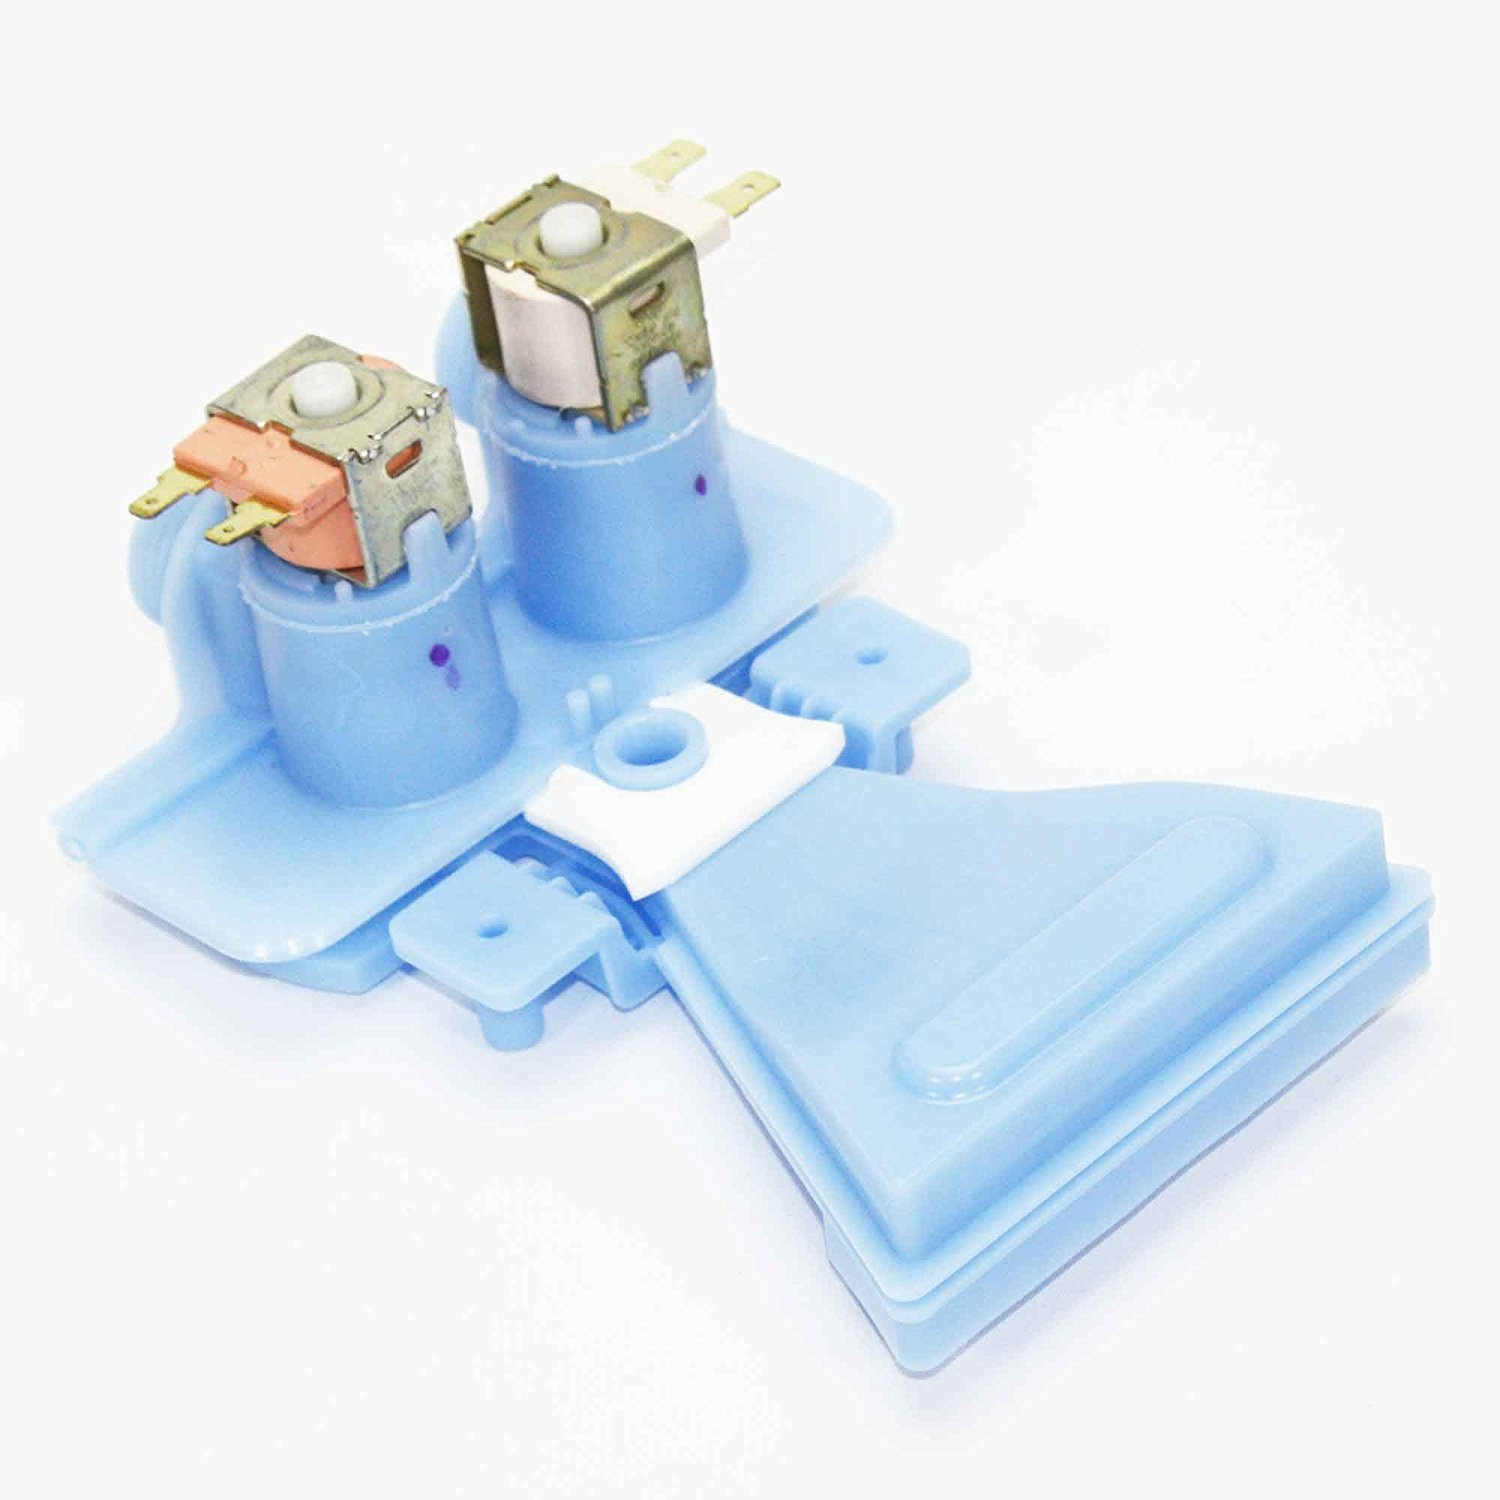 Ge WH13X24386 Washer Water Inlet Valve Assembly Genuine Original Equipment Manufacturer (OEM) Part